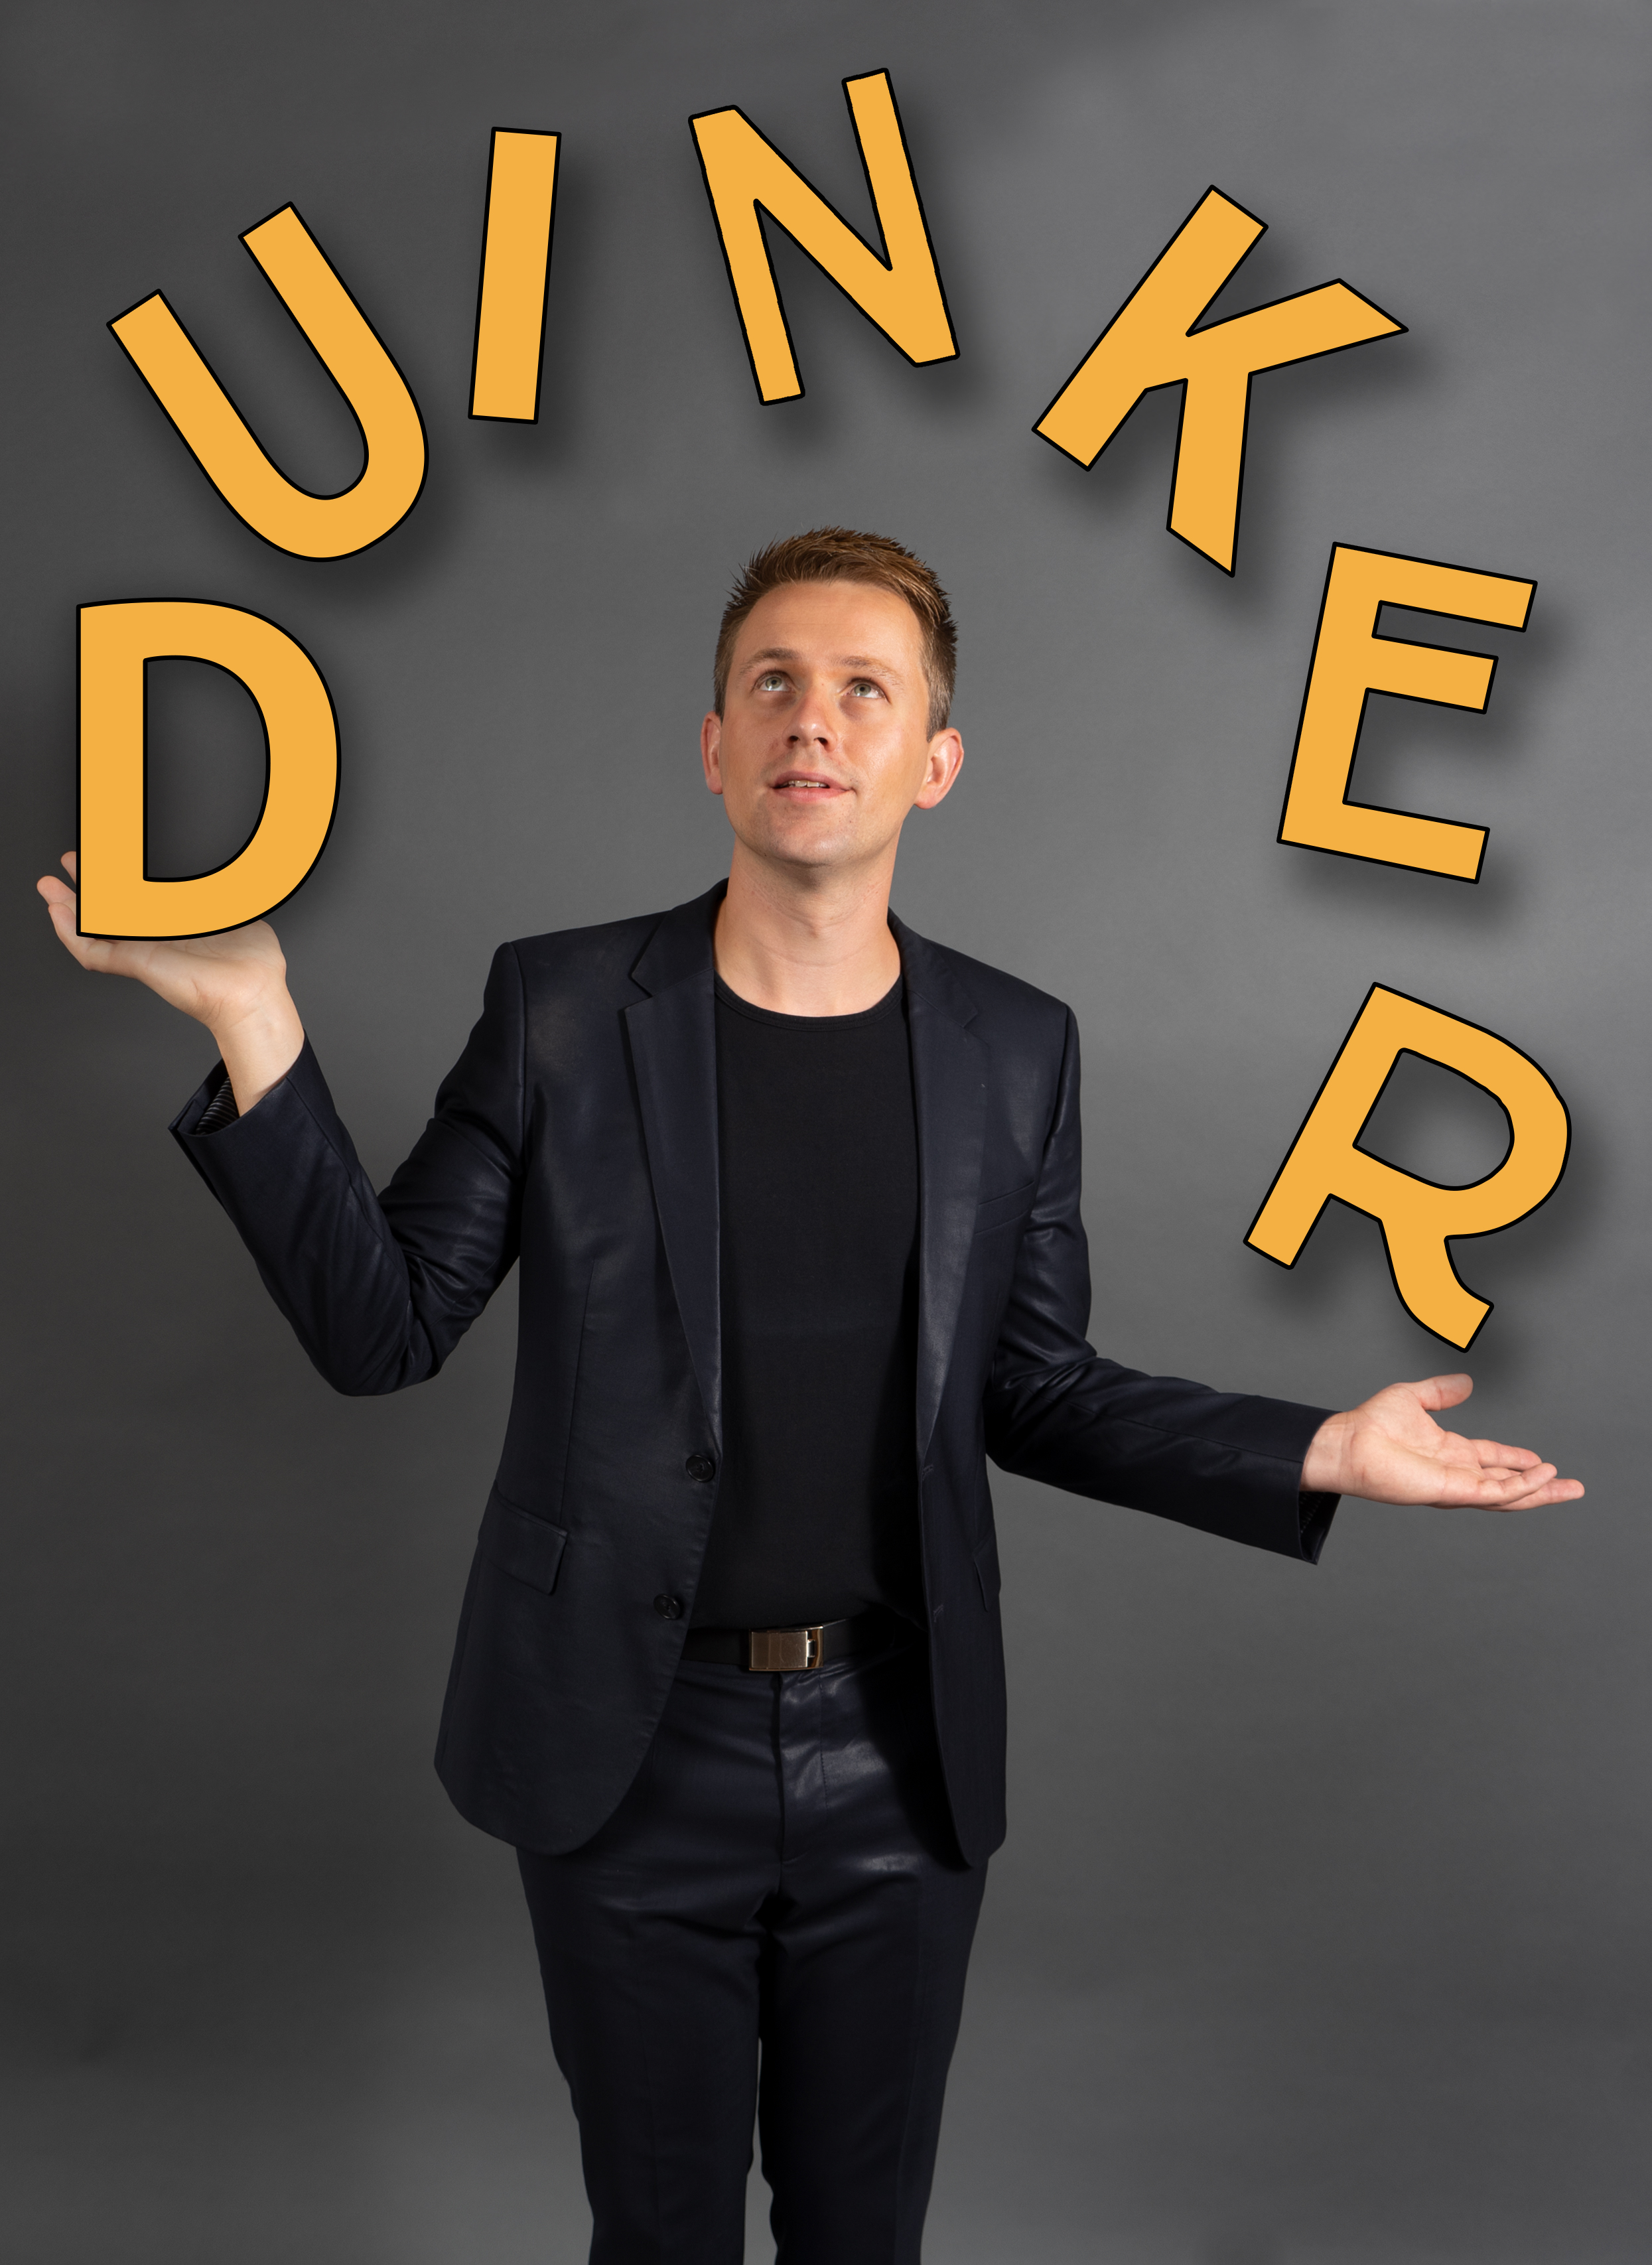 This week on the show I talk with Juggler Niels Duinker about his journey from growing up in the Netherlands to performing nightly at the Comedy Barn in Pigeon Forge, Tennessee.  Want to share your breaking moment? Leave us a voicemail at 323-524-7456  Love the show? Why not become a producer? For $1 or more a month you can become a part of the team and receive bonus content. Check out our Patreon page to find out more  for live show dates visit TaylorHughes.com/live  You can hear all episodes and get more info on our website abouttobreakpodcast.com